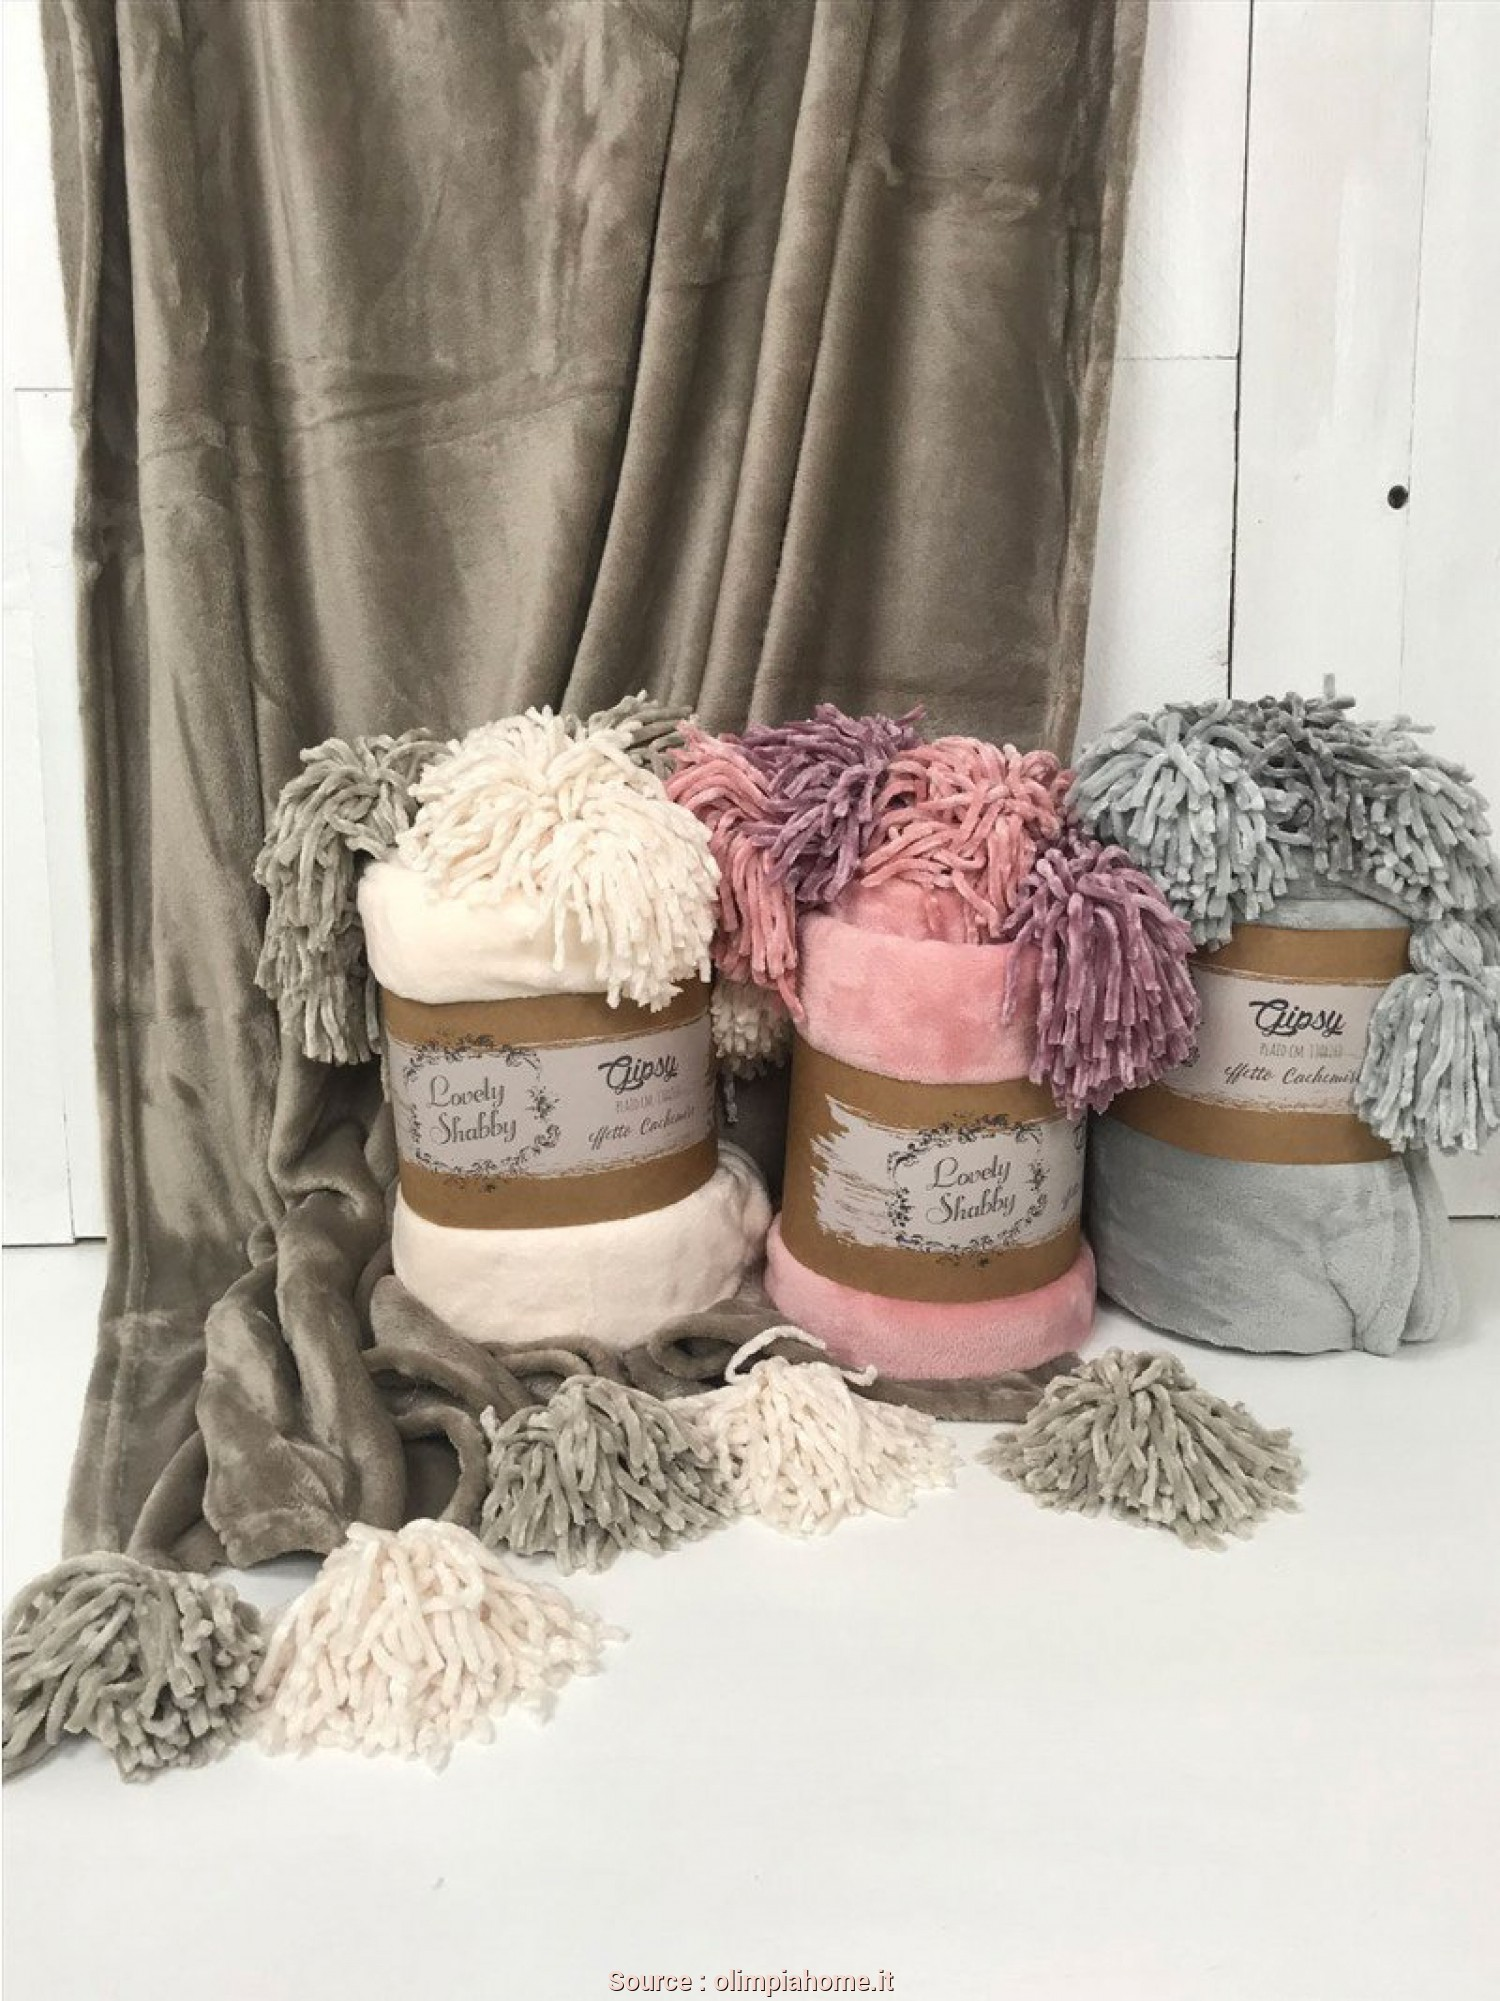 Come Mettere Il Plaid, Divano, Grande Plaid Morbido Gipsy, Lovely Shabby, Olimpiahome